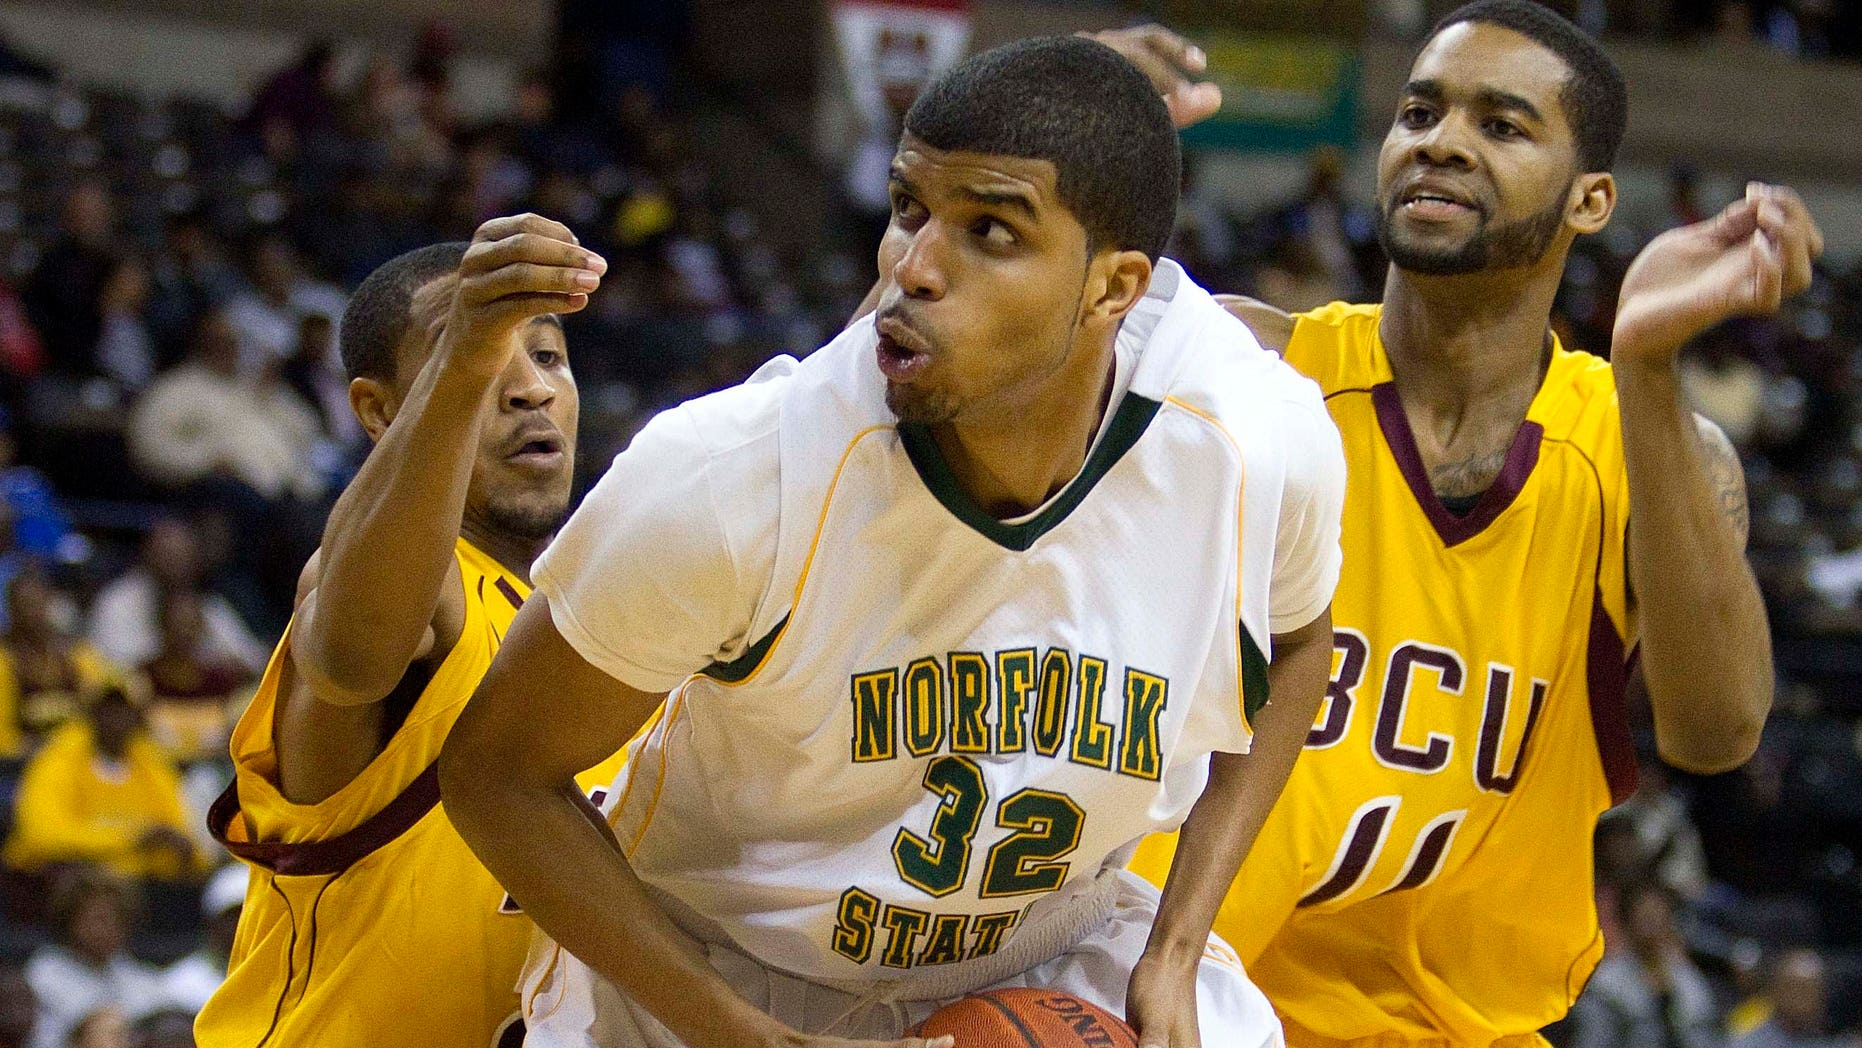 Norfolk State's Marcos Tamares (32) is guarded by Bethune-Cookman Kevin Dukes (21) and Javoris Bryant (11) during the first half of an NCAA college basketball game in the championship of the Mid-Eastern Athletic Conference tournament in Winston-Salem, NC., Saturday, March 10, 2012.